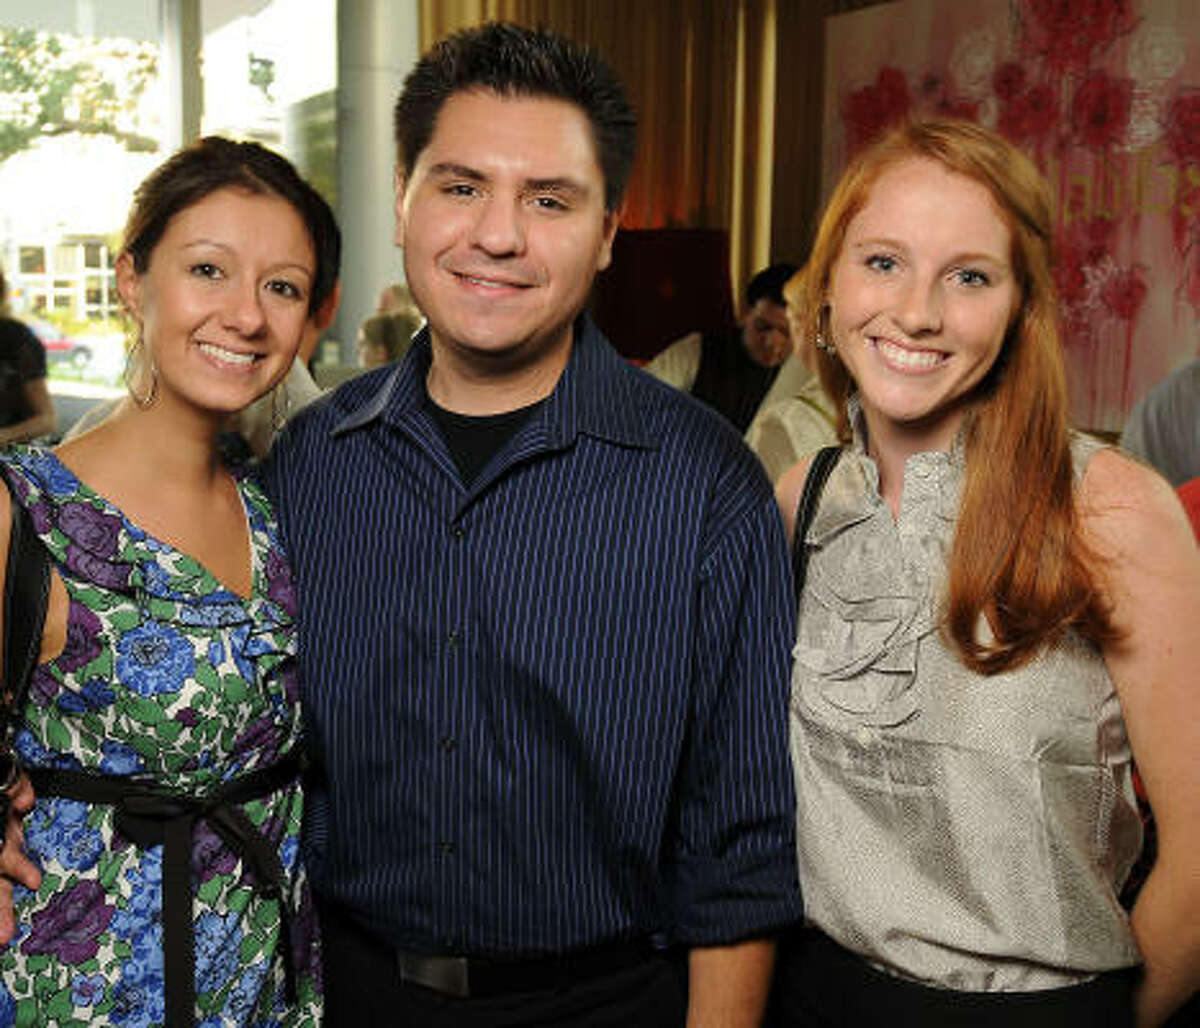 From left: Melissa Seuffert, Anthony Pineda and Kim Espinosa at the fall kickoff party for Ballet Barre at RDG + Bar Annie.